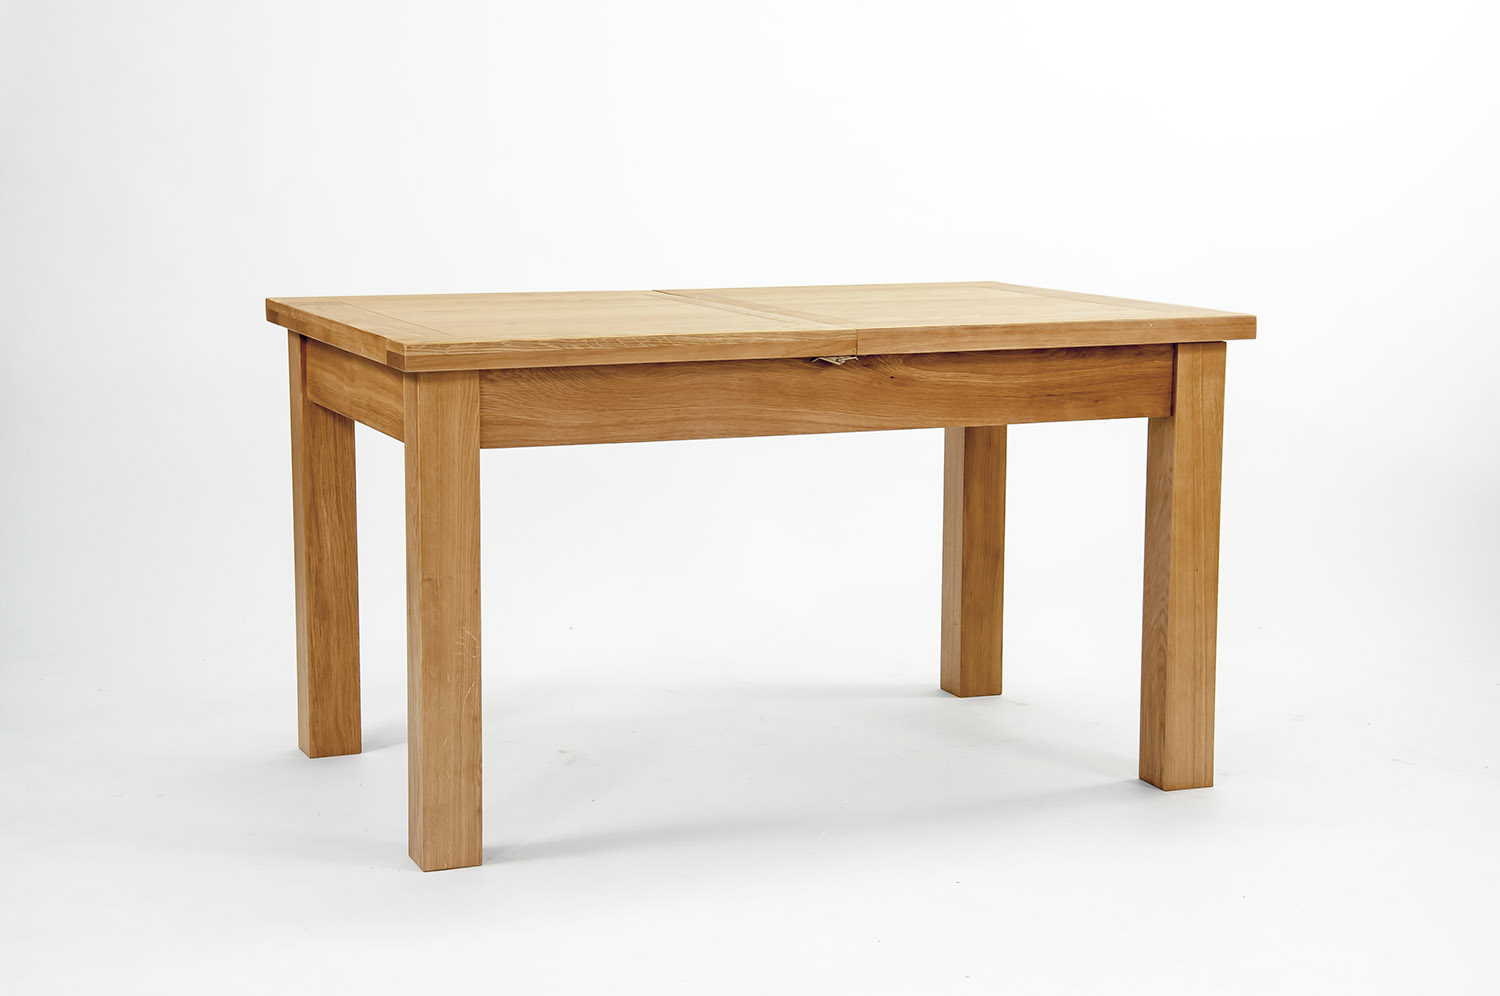 Devon oak extending dining table 140cm to 200cm by oak for 1 oak las vegas table prices